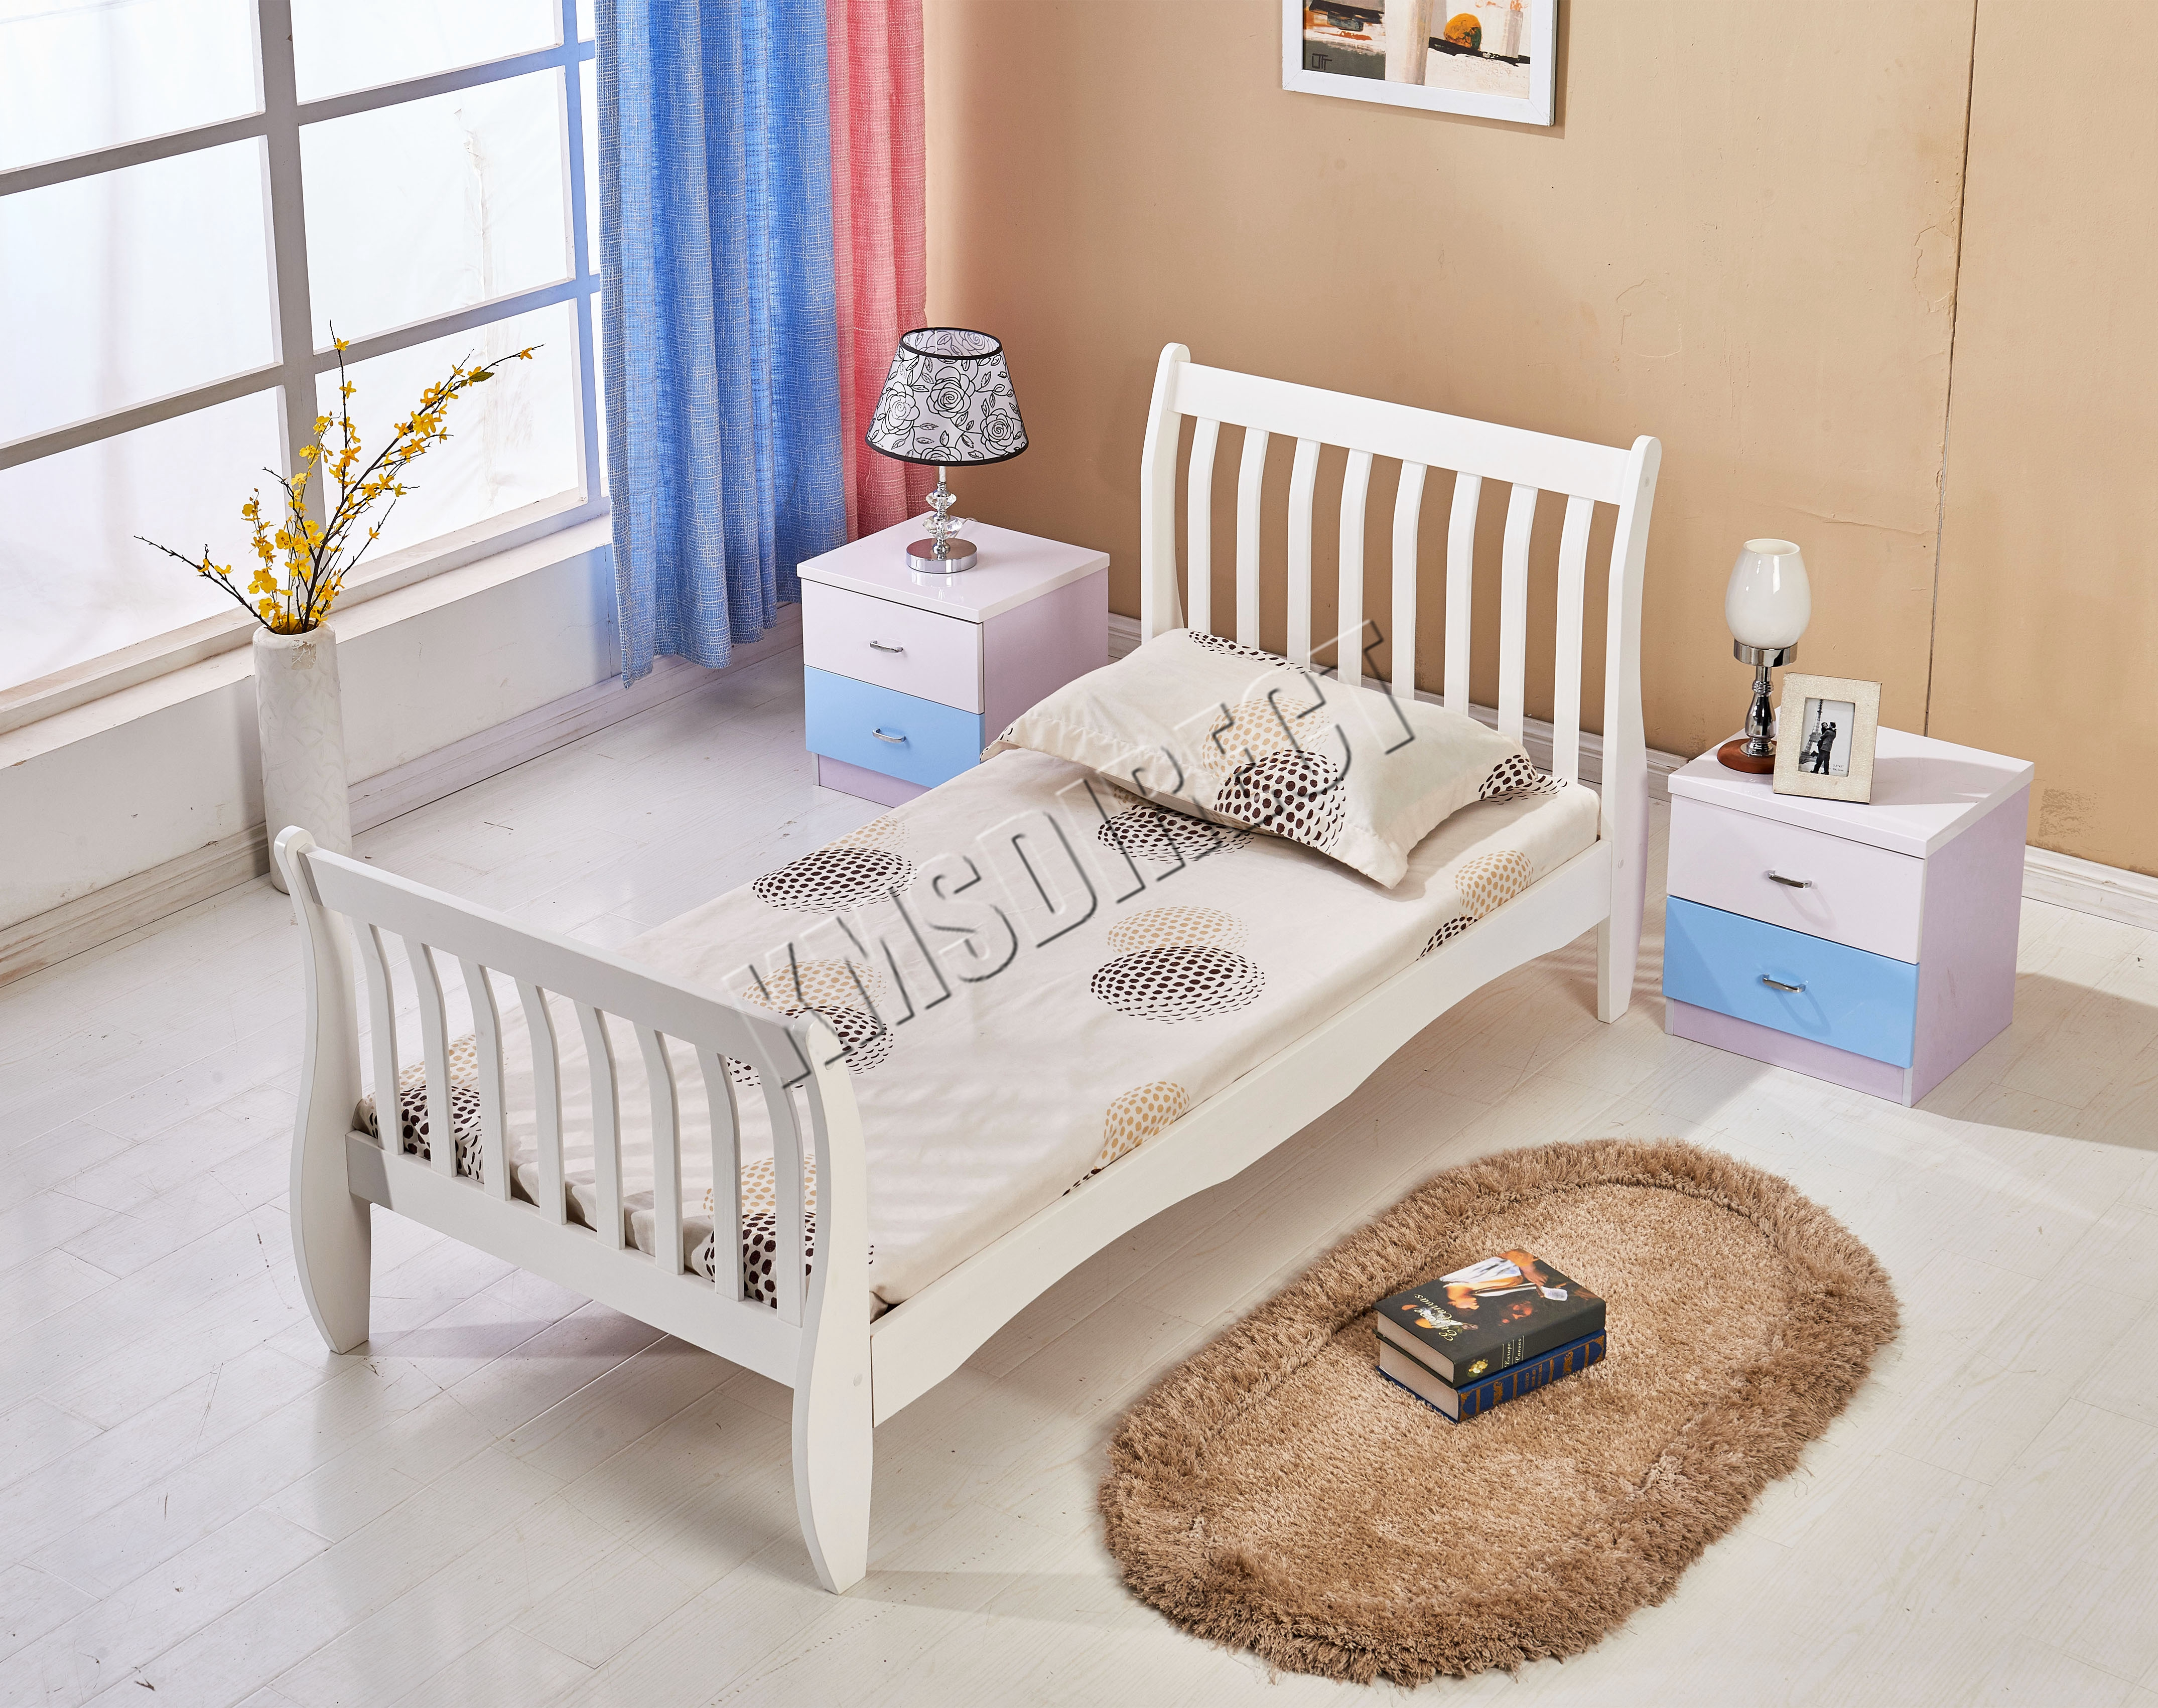 Sentinel FoxHunter 3ft Single Wooden Sleigh Bed Frame Pine Bedroom  Furniture White WSB01